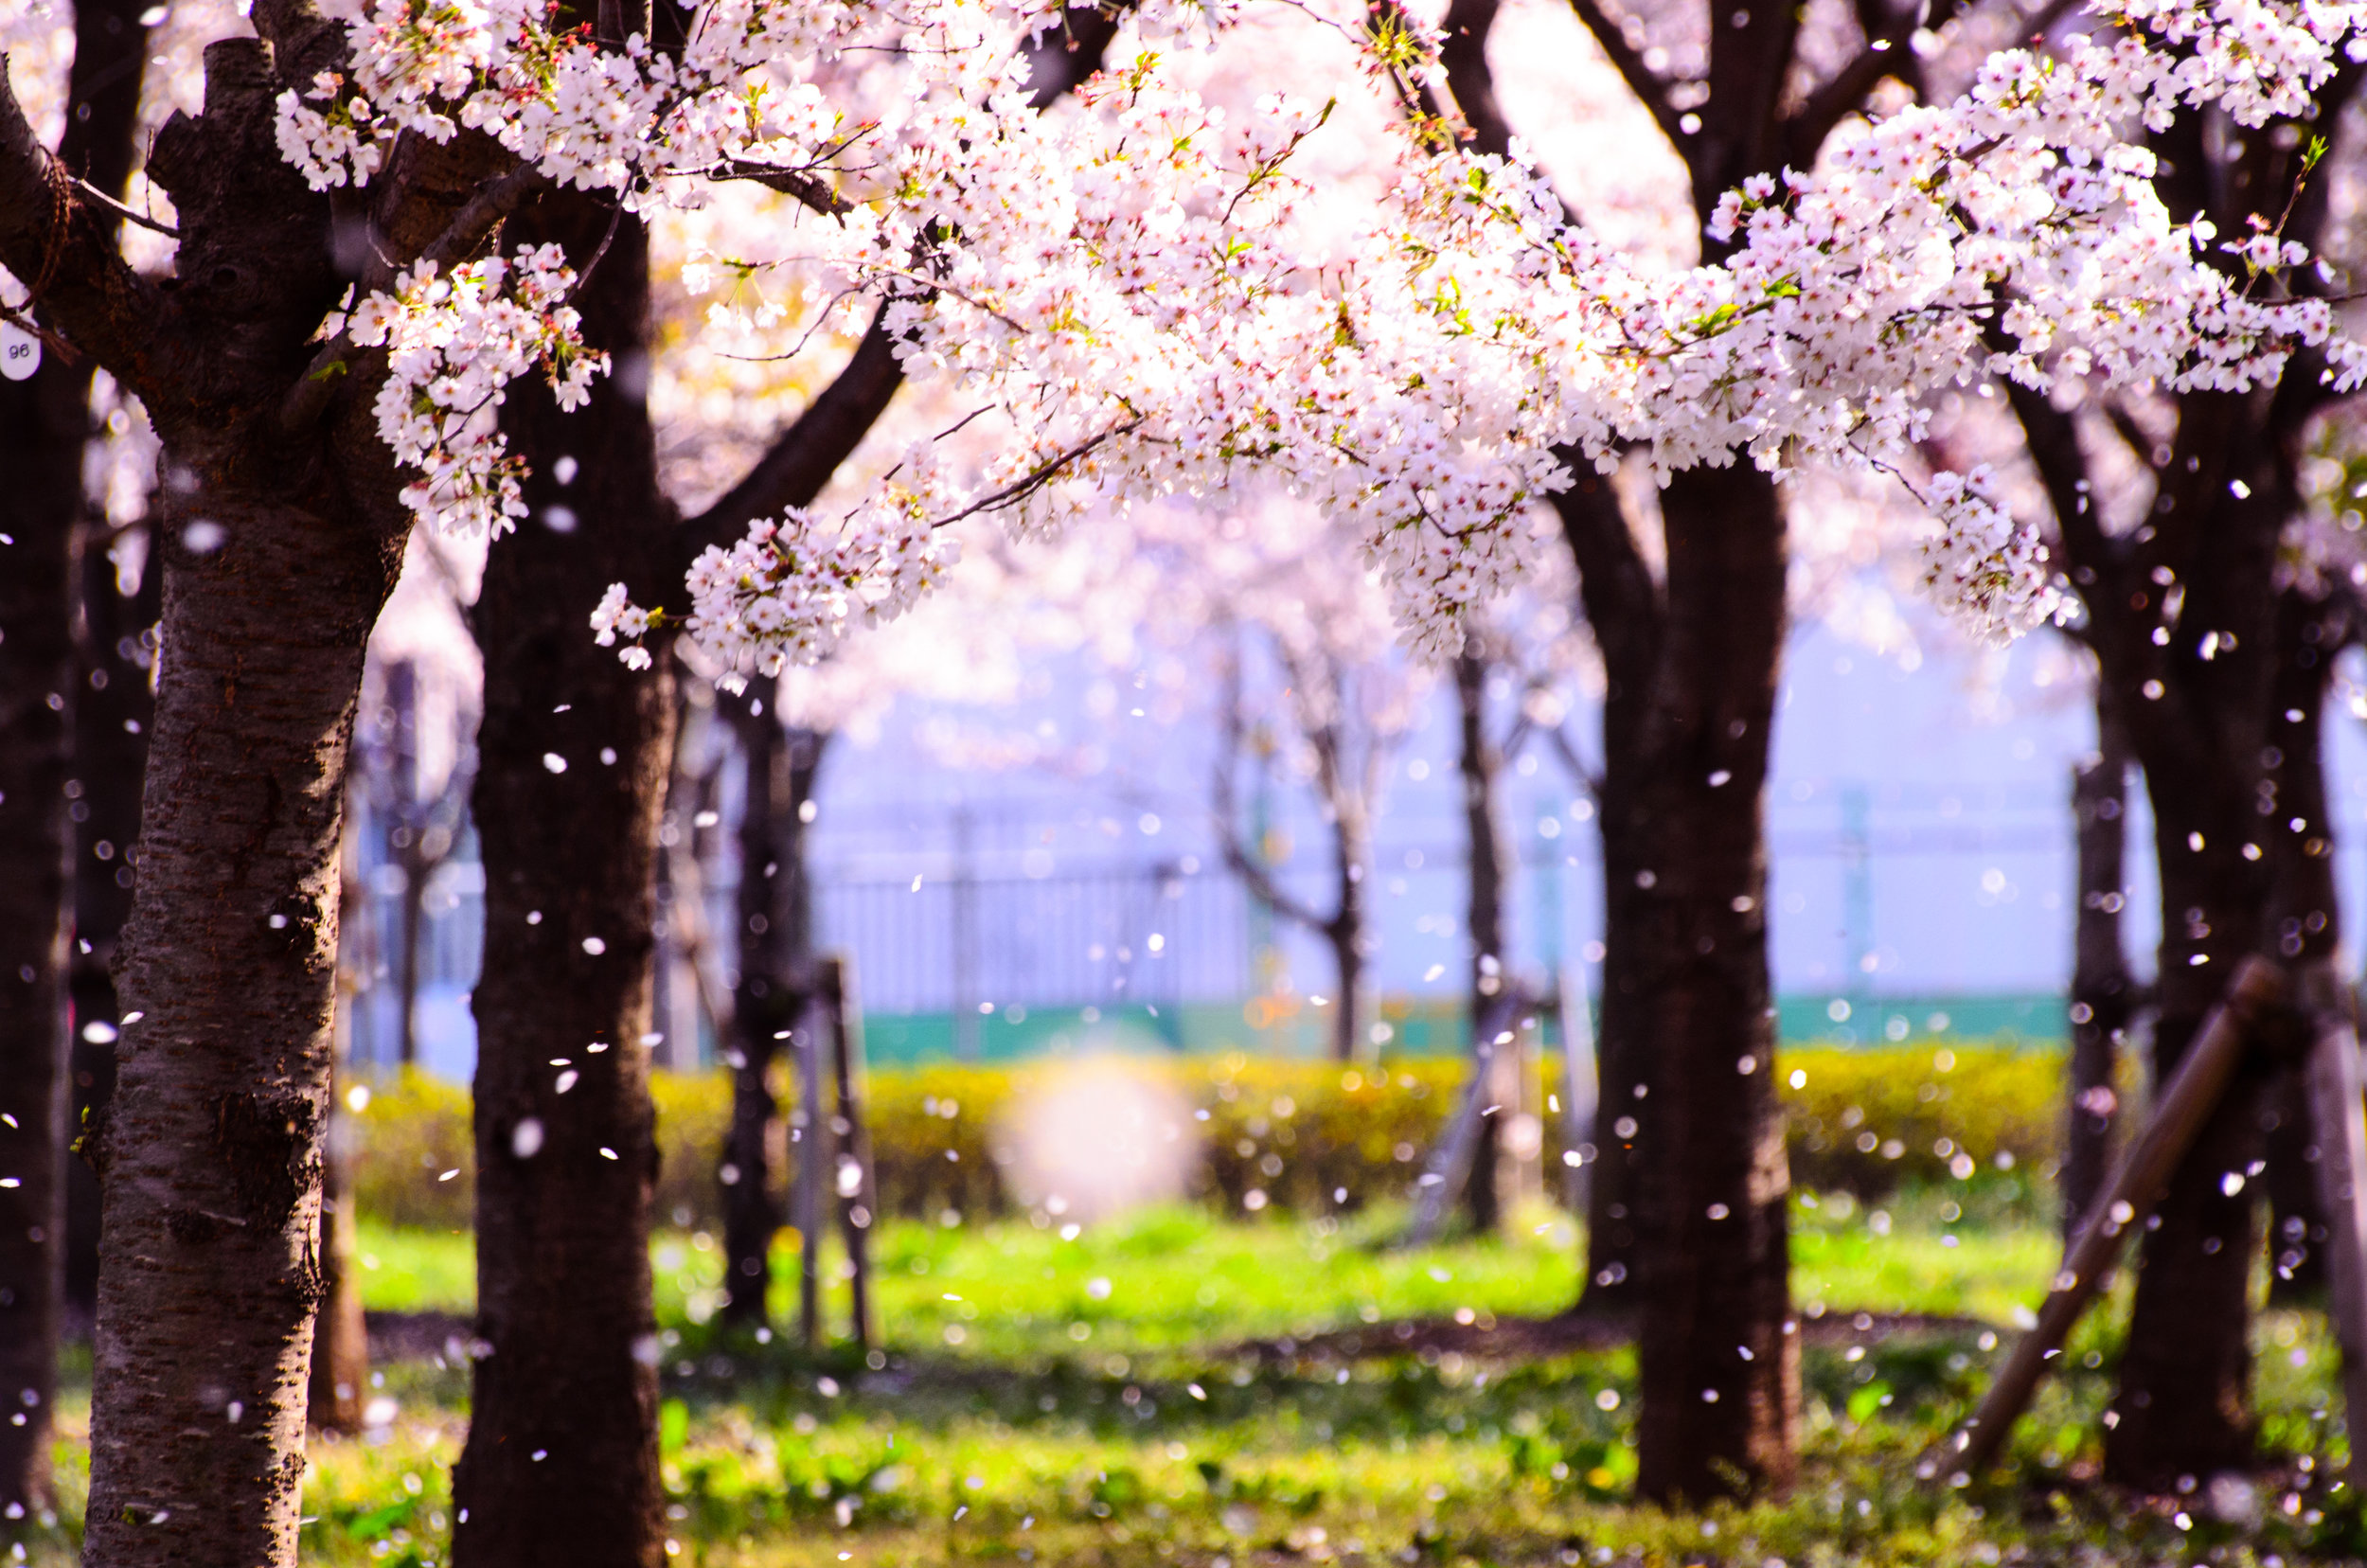 pathway through the cherry trees with blossoms blowing in the wind